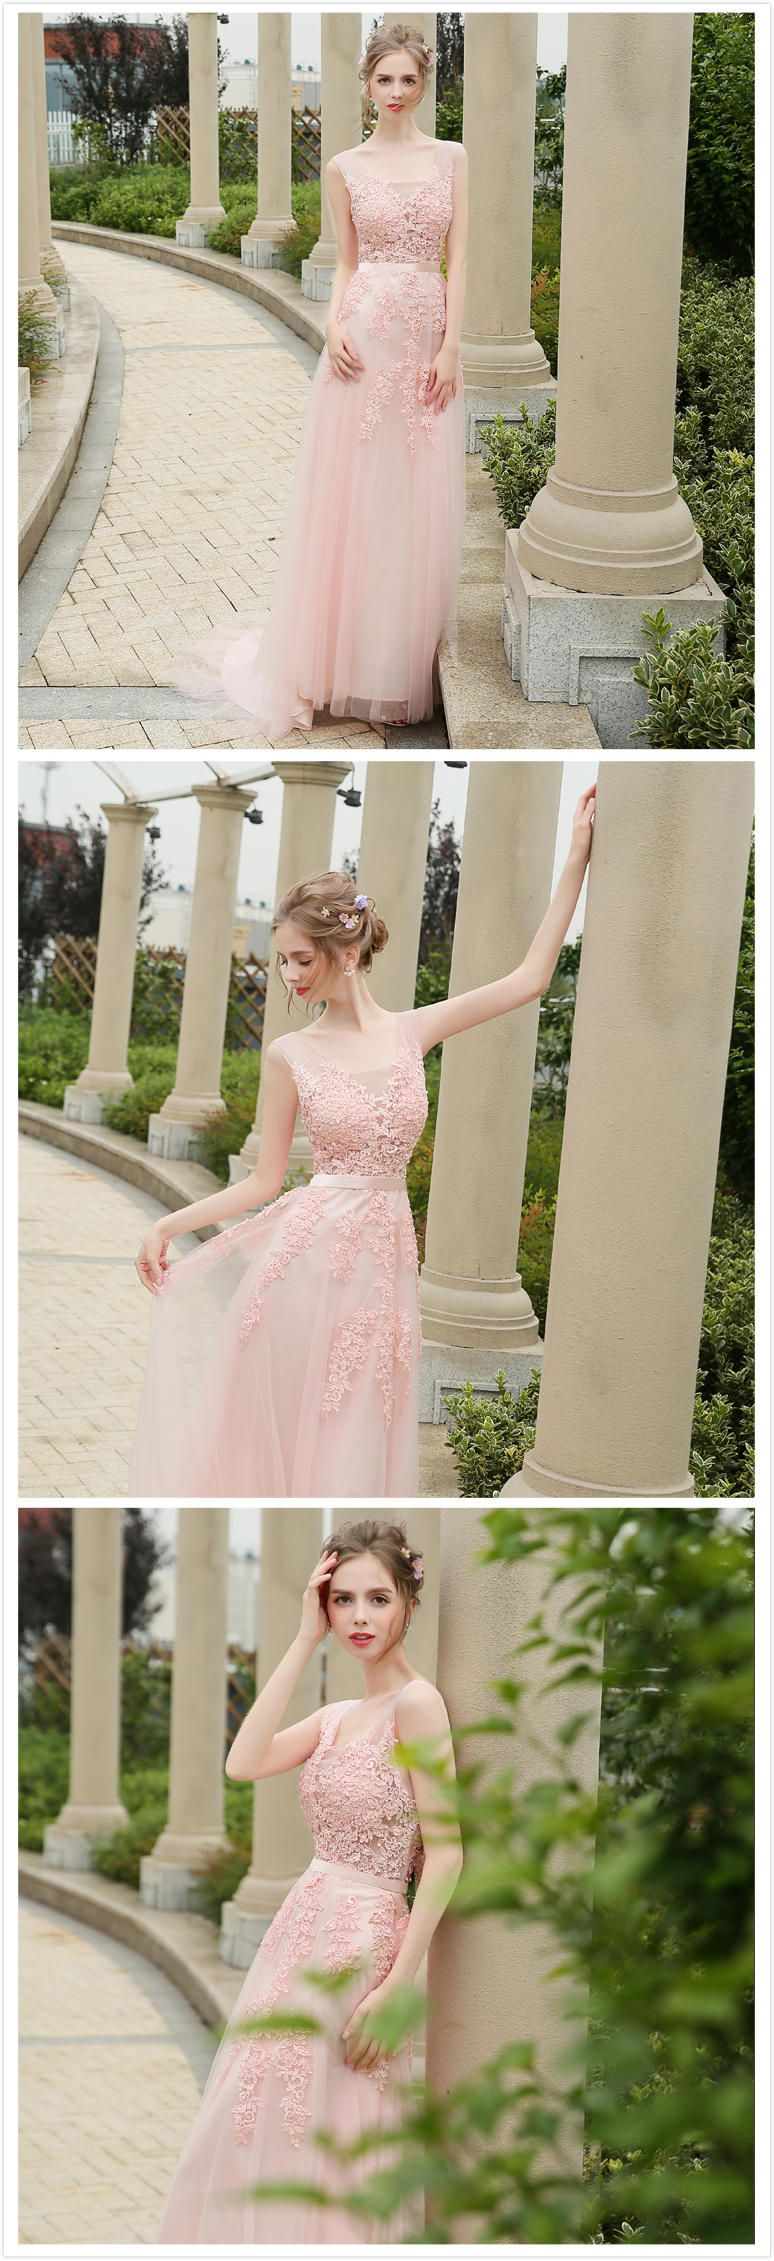 f8dc5012fcb Azbro Women s Floral Lace Paneled V Neck Slim Fit Prom Dress